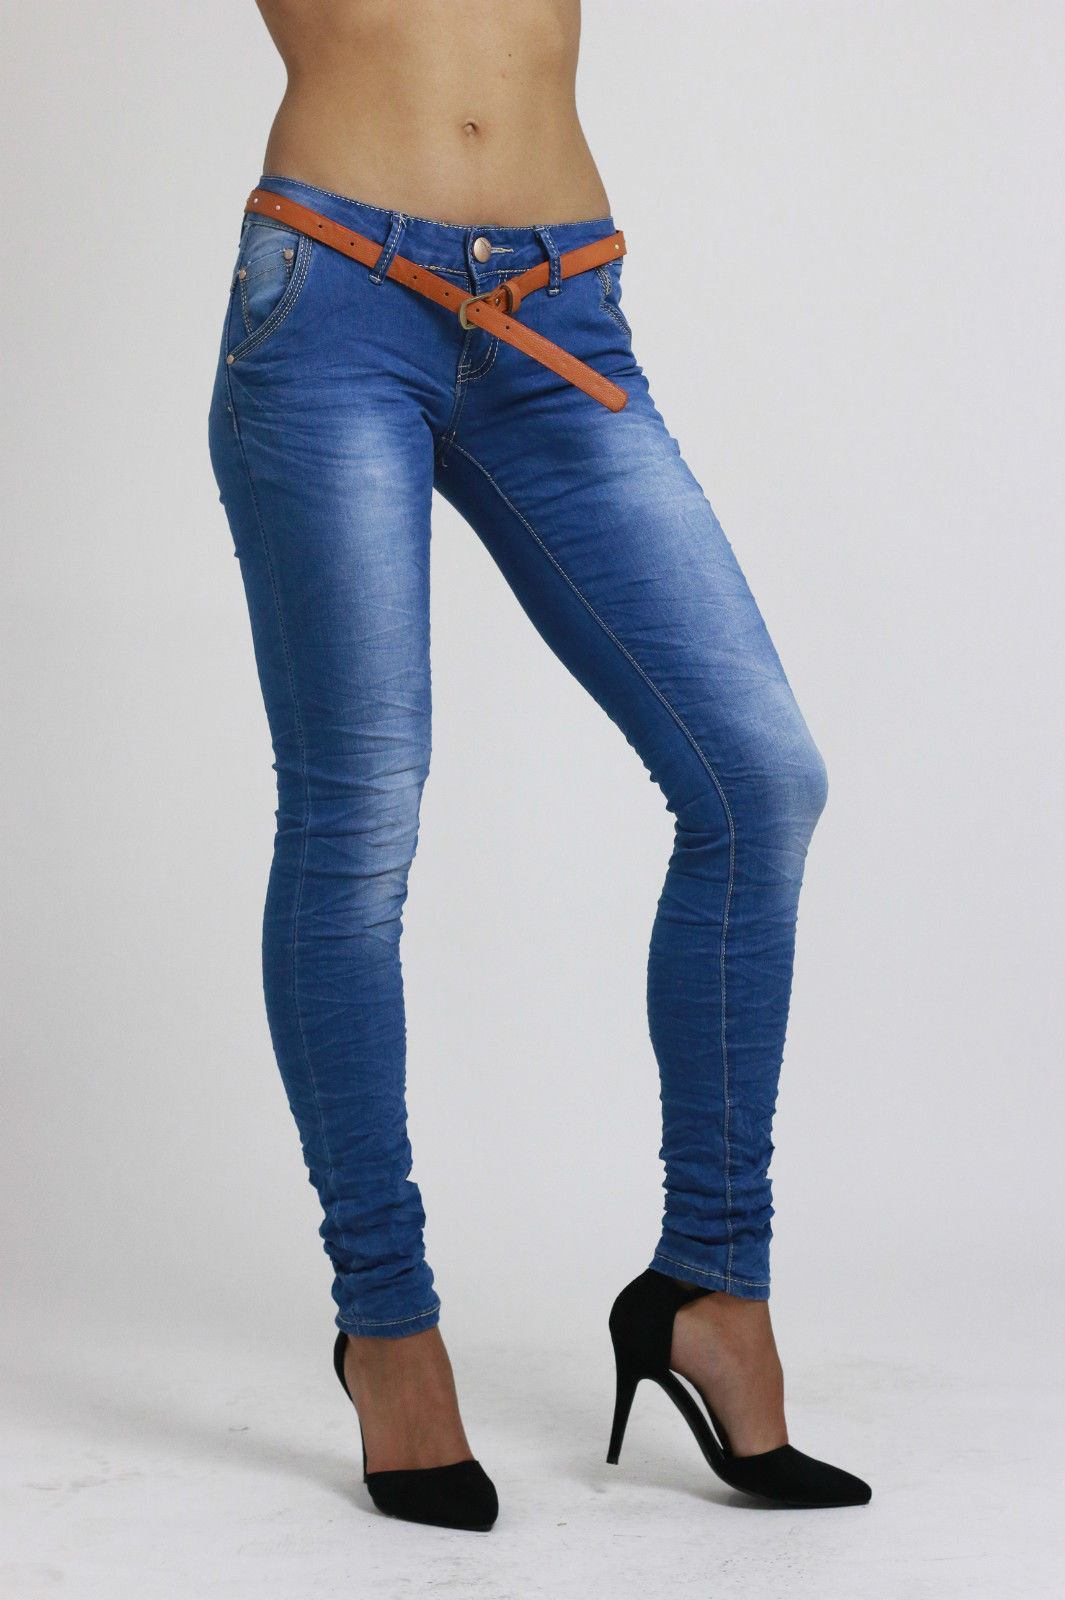 Womens Ladies Slim Fit Stretchy Skinny Blue Denim Jeans Pant UK